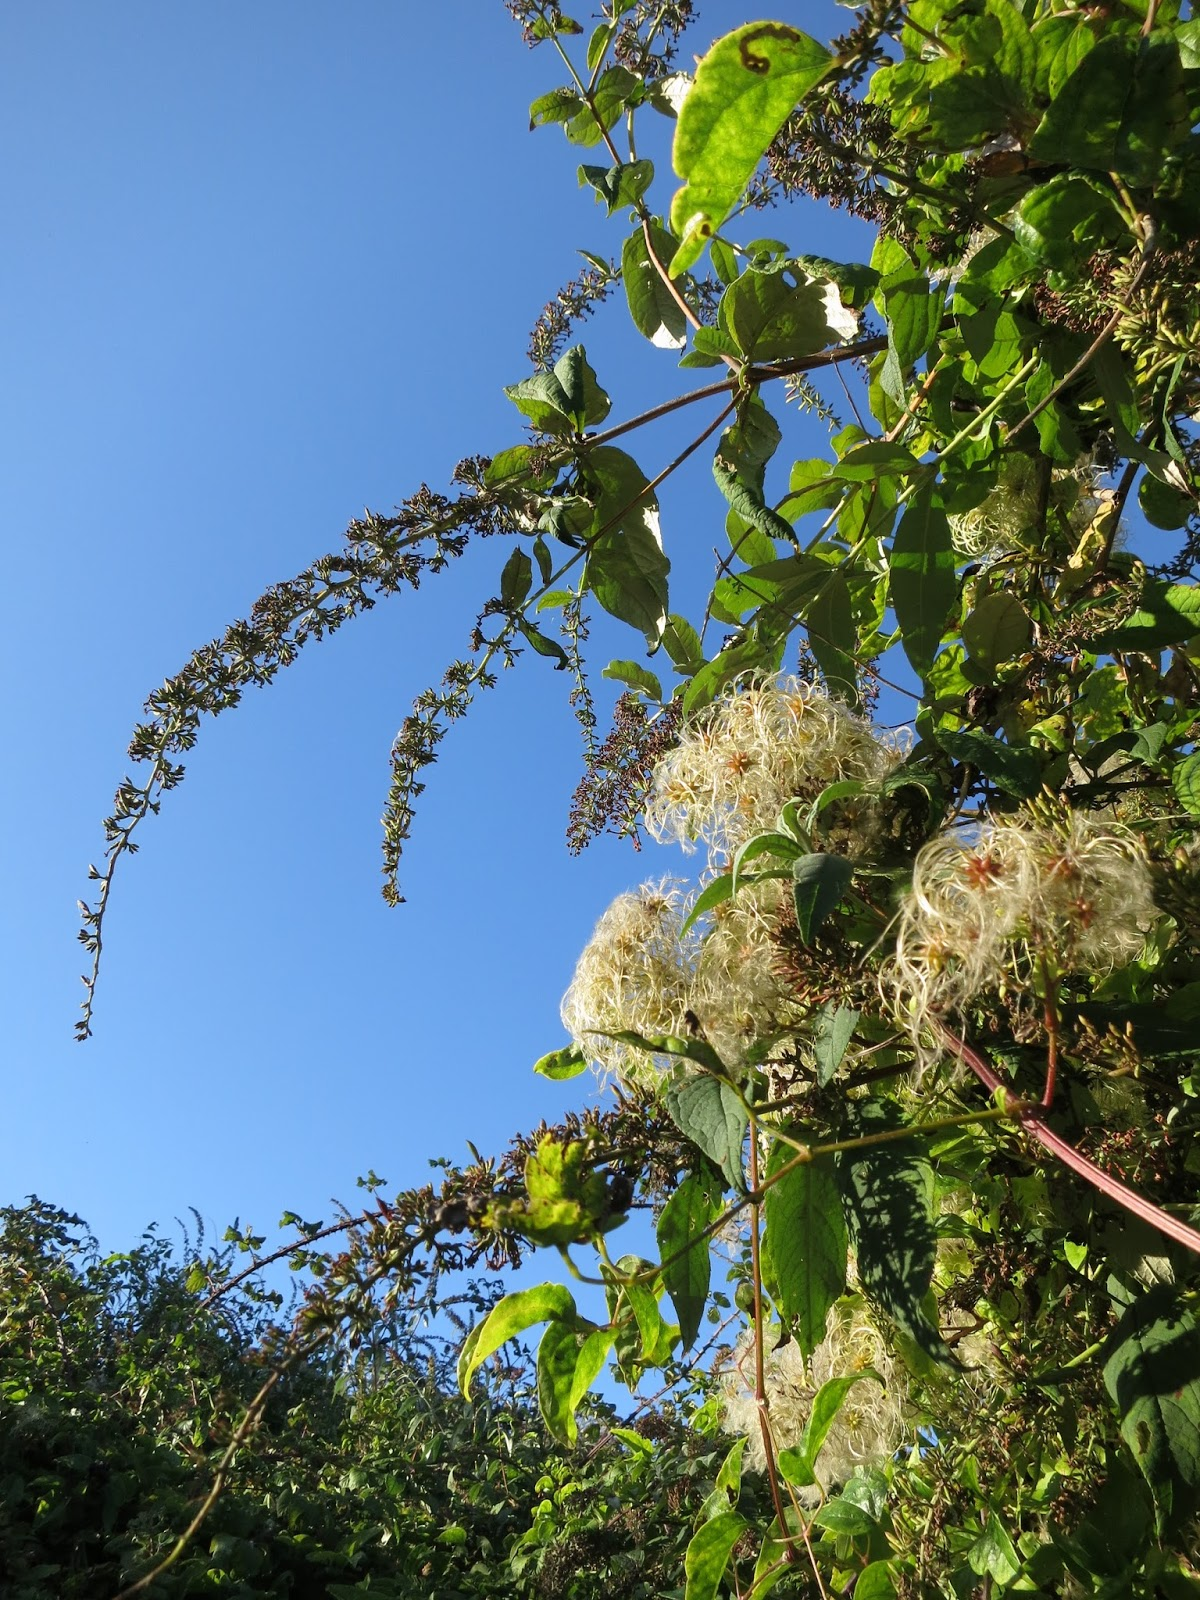 Buddleia flowers die and Old Man's Beard catches the eye